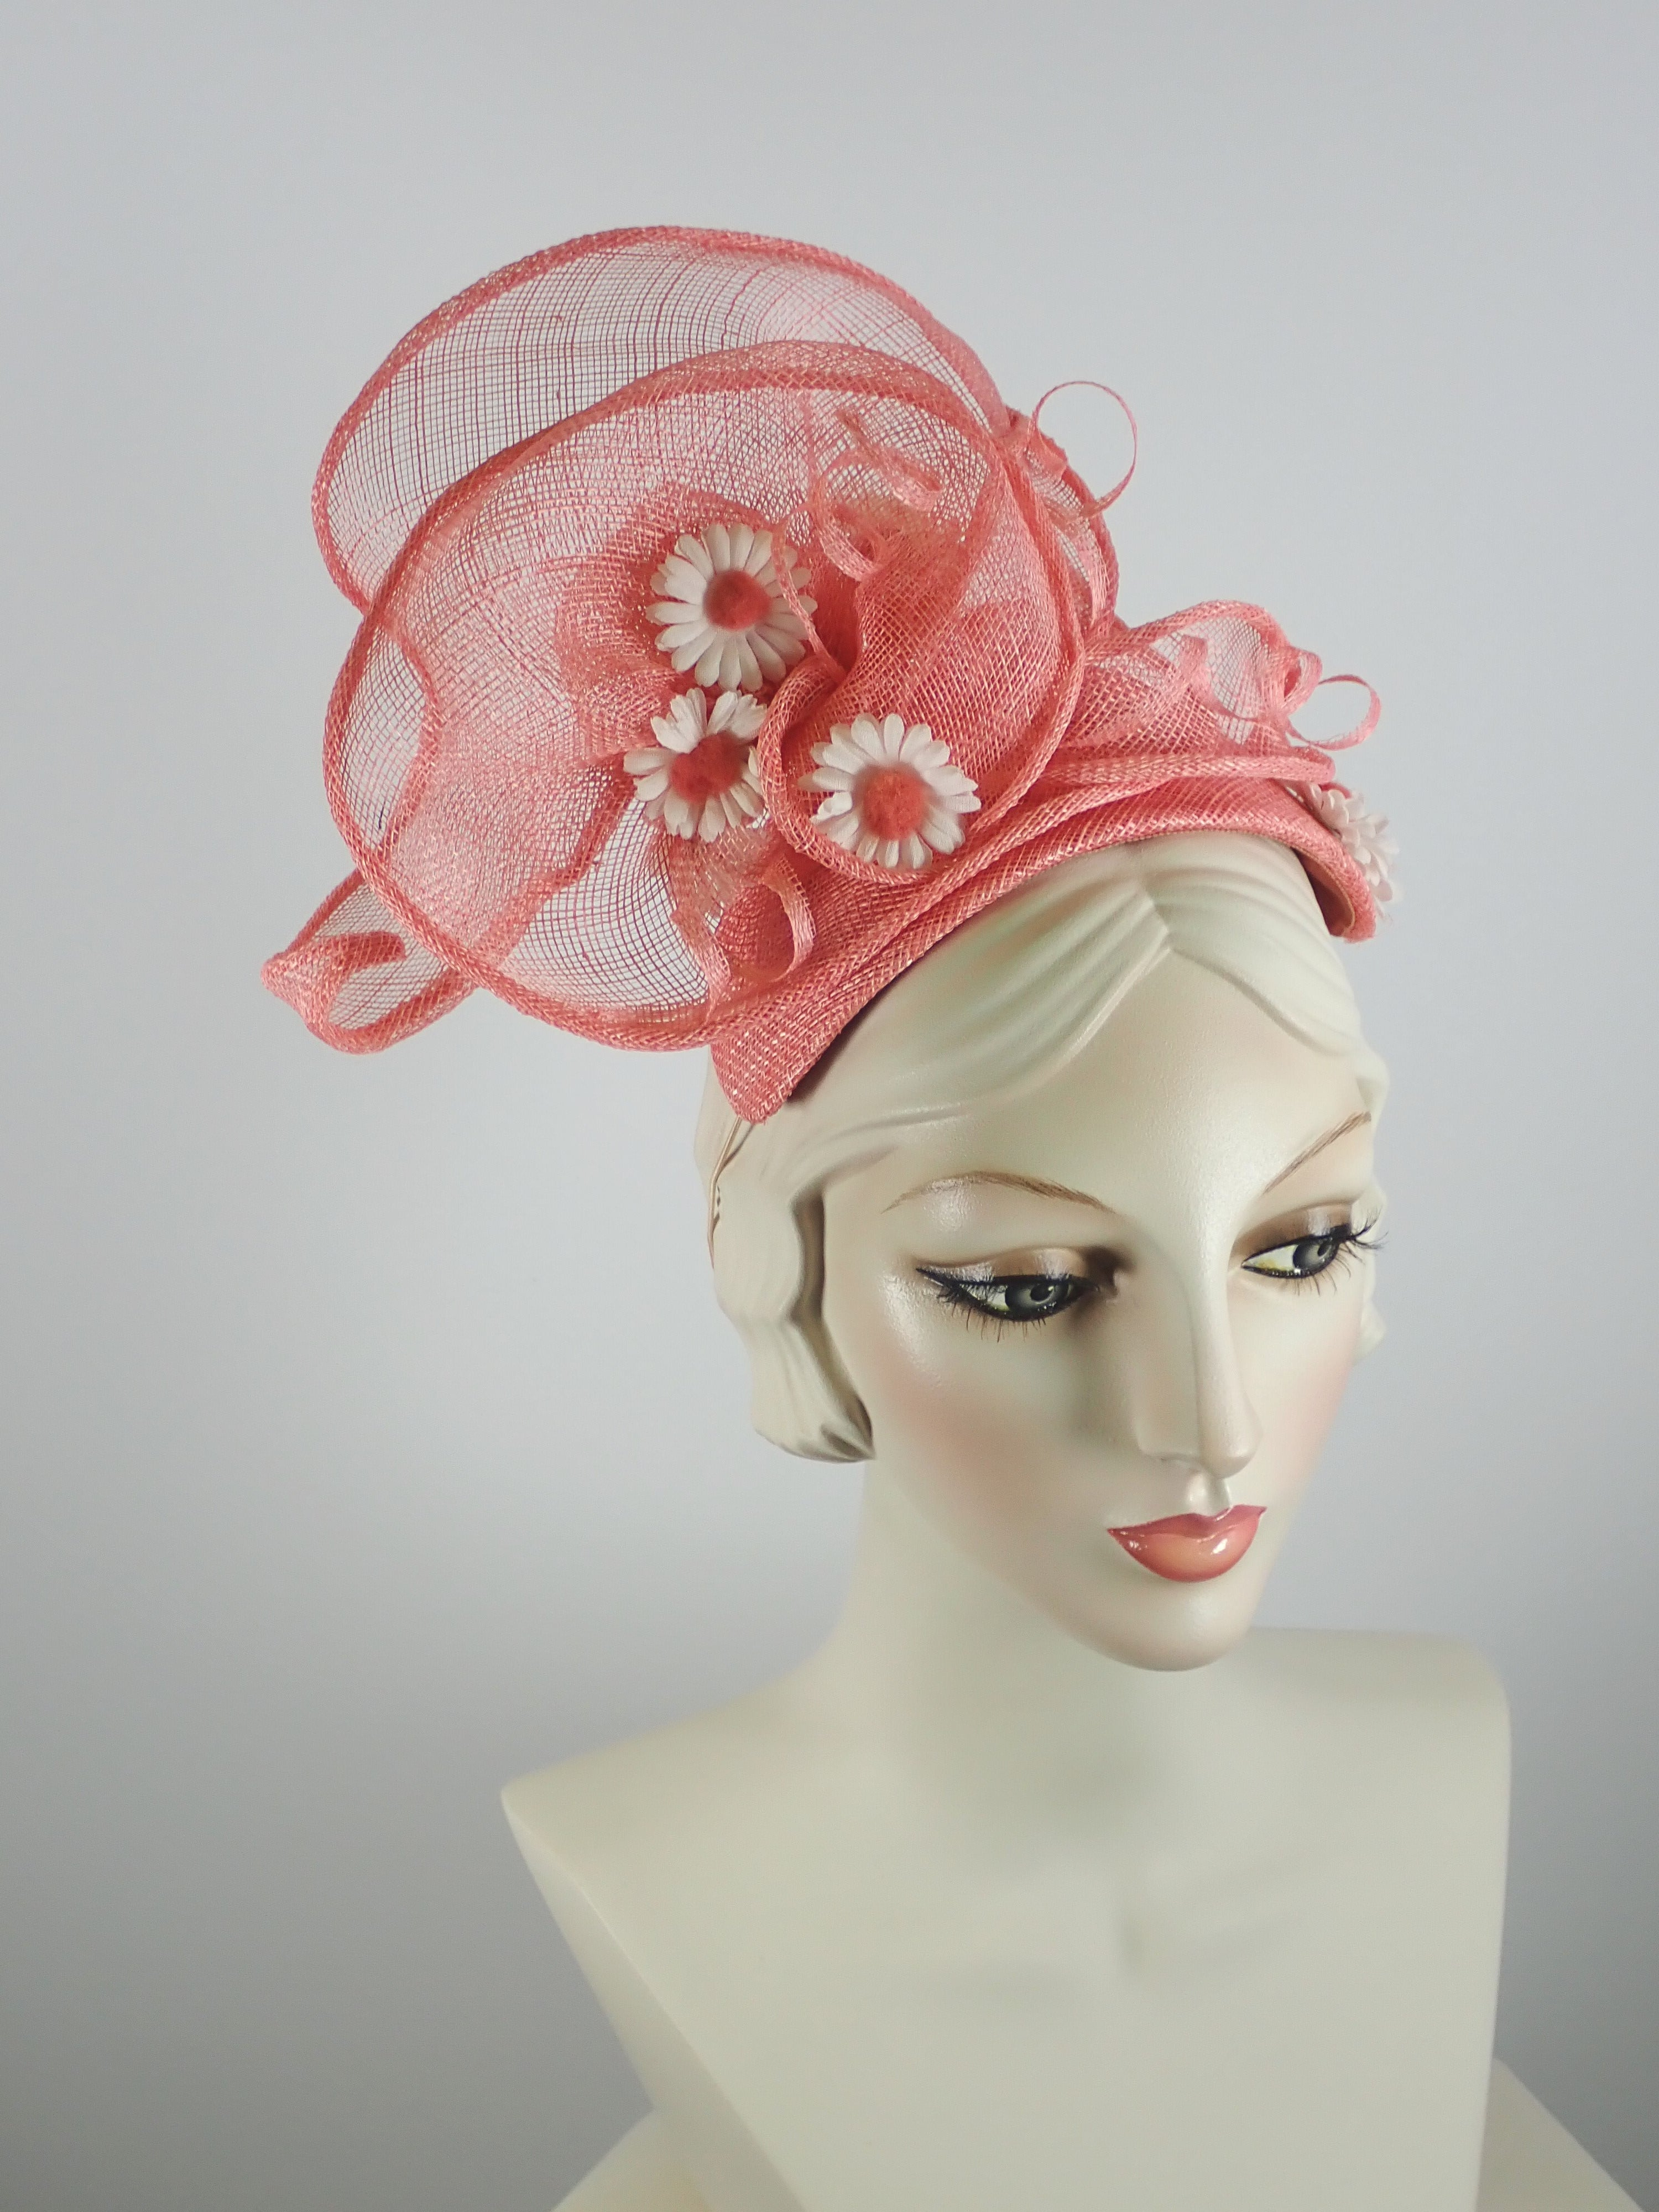 0b5d8011 Peach Coral Sinamay Fascinator Hat for Women – What a Great Hat